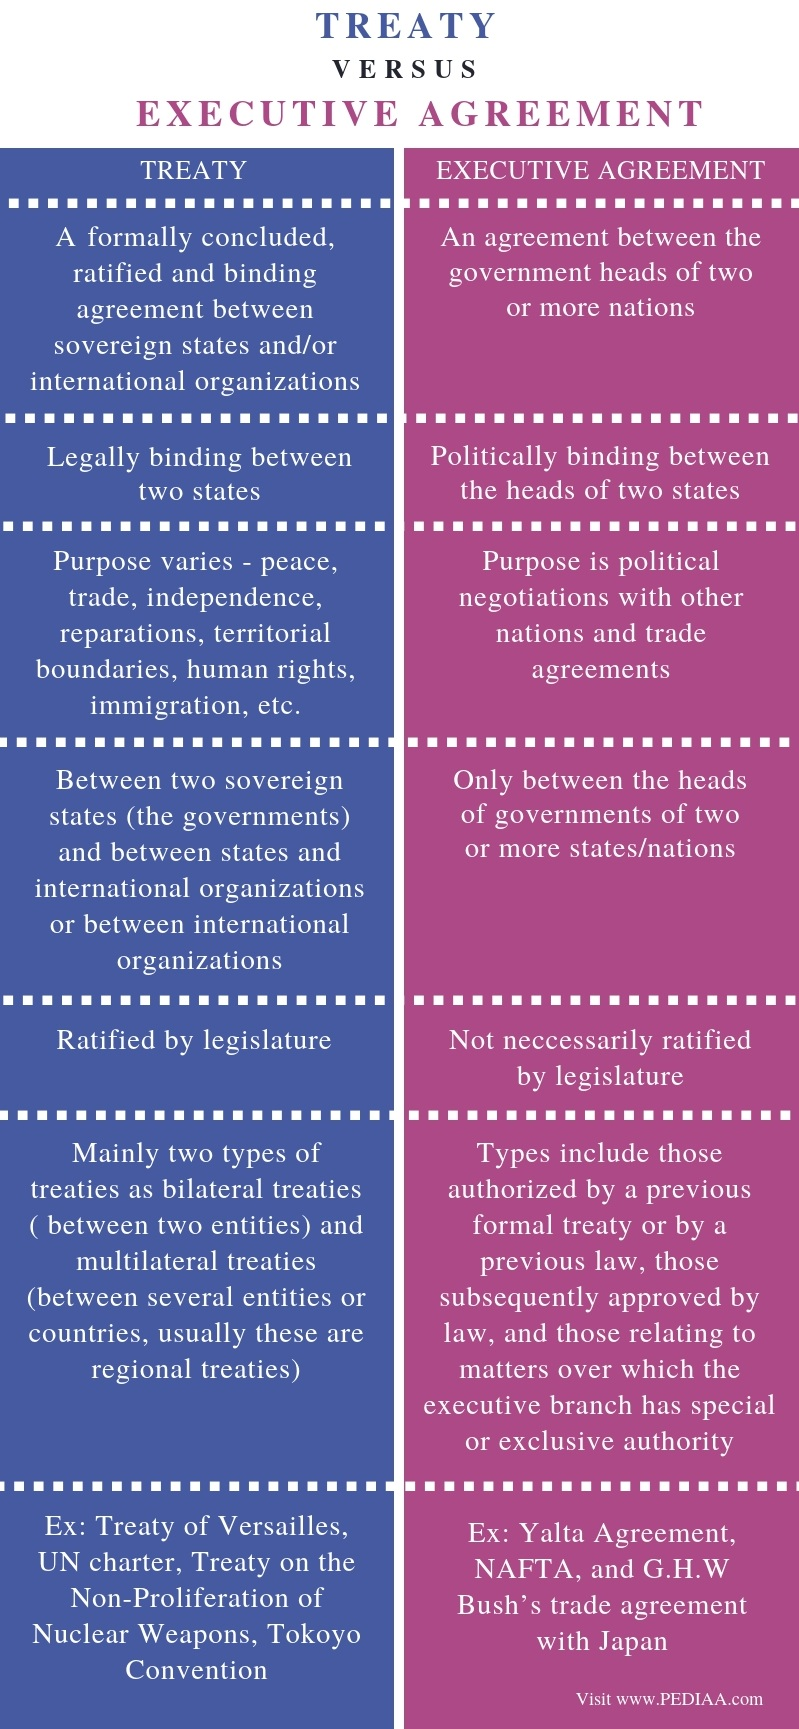 What Are The Key Differences Between An Executive And A Non >> What Is The Difference Between Treaty And Executive Agreement